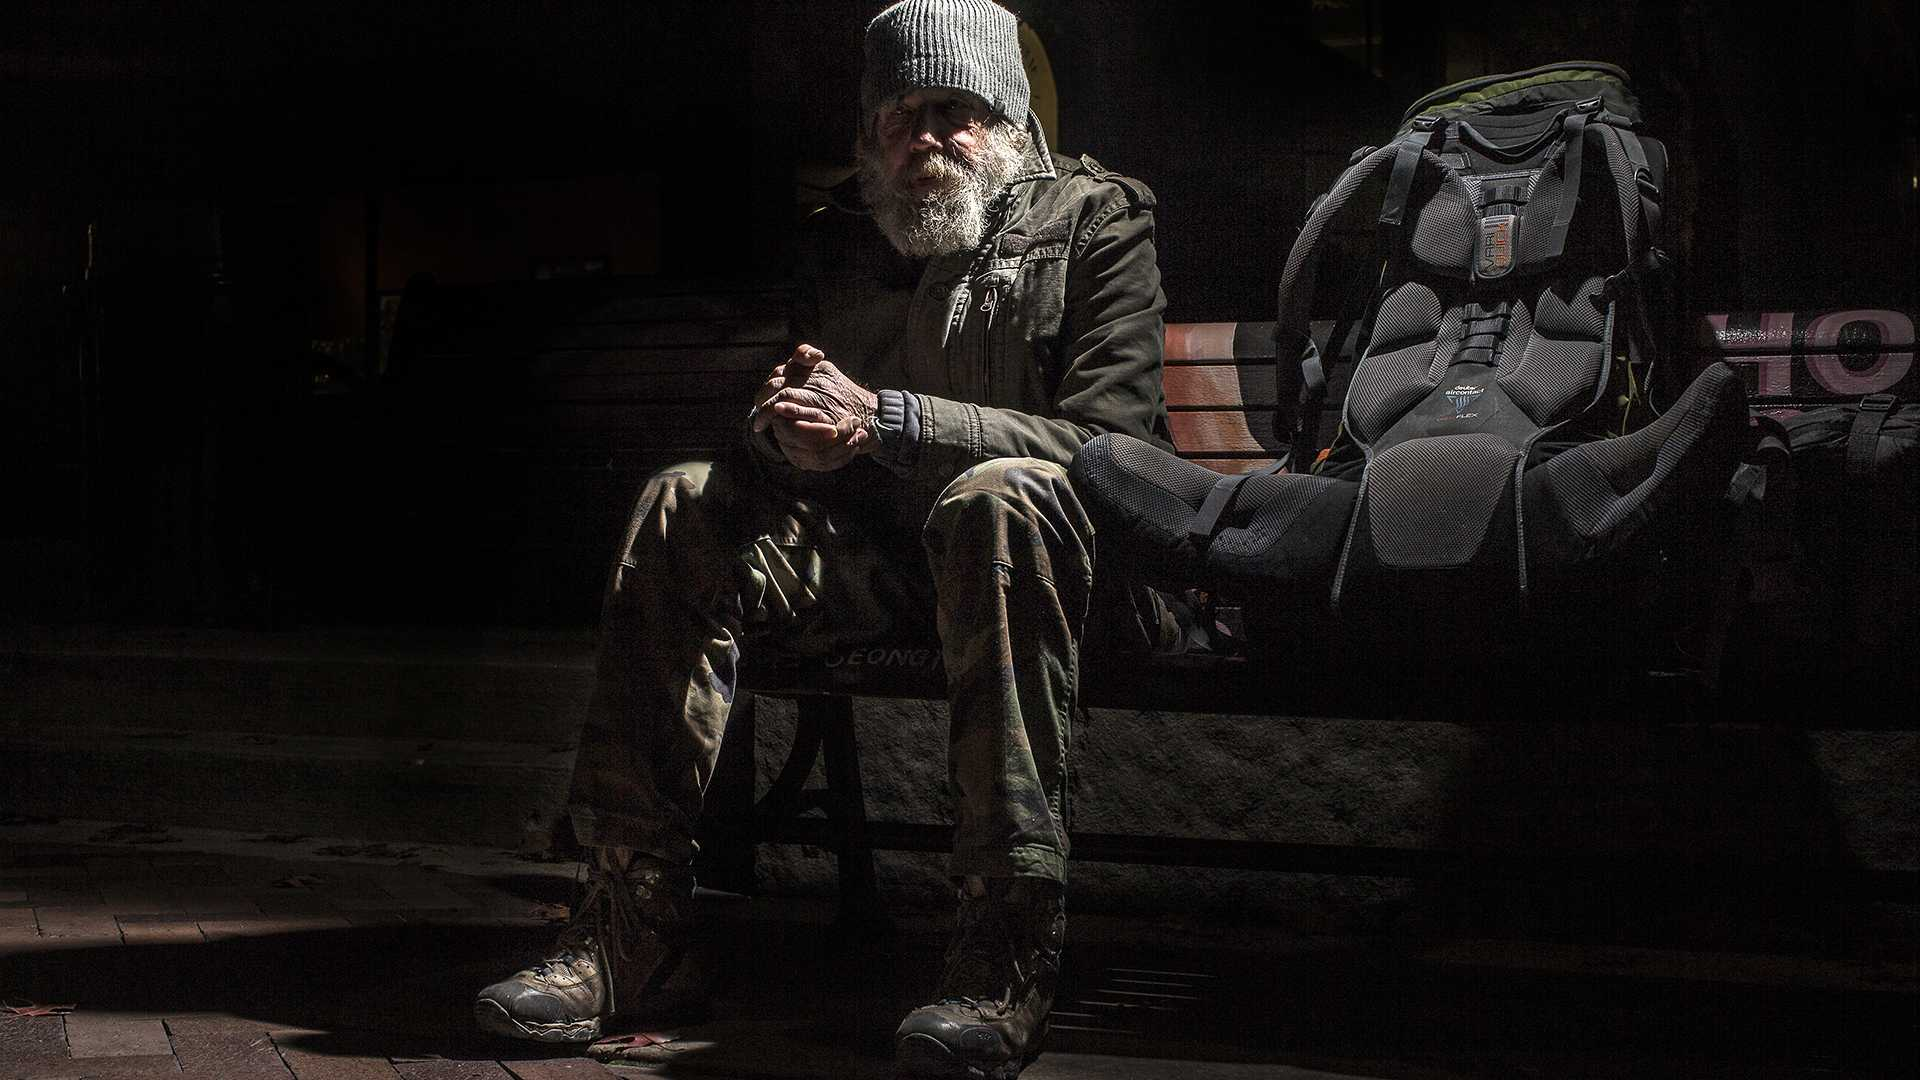 FILE - Ronal Alan Rarey, sits and listens to a singer in the Ped Mall on Monday, Nov. 9, 2015. Rarey is a homeless Vietnam veteran, he has been without a home for nearly seven years. (The Daily Iowan/file)